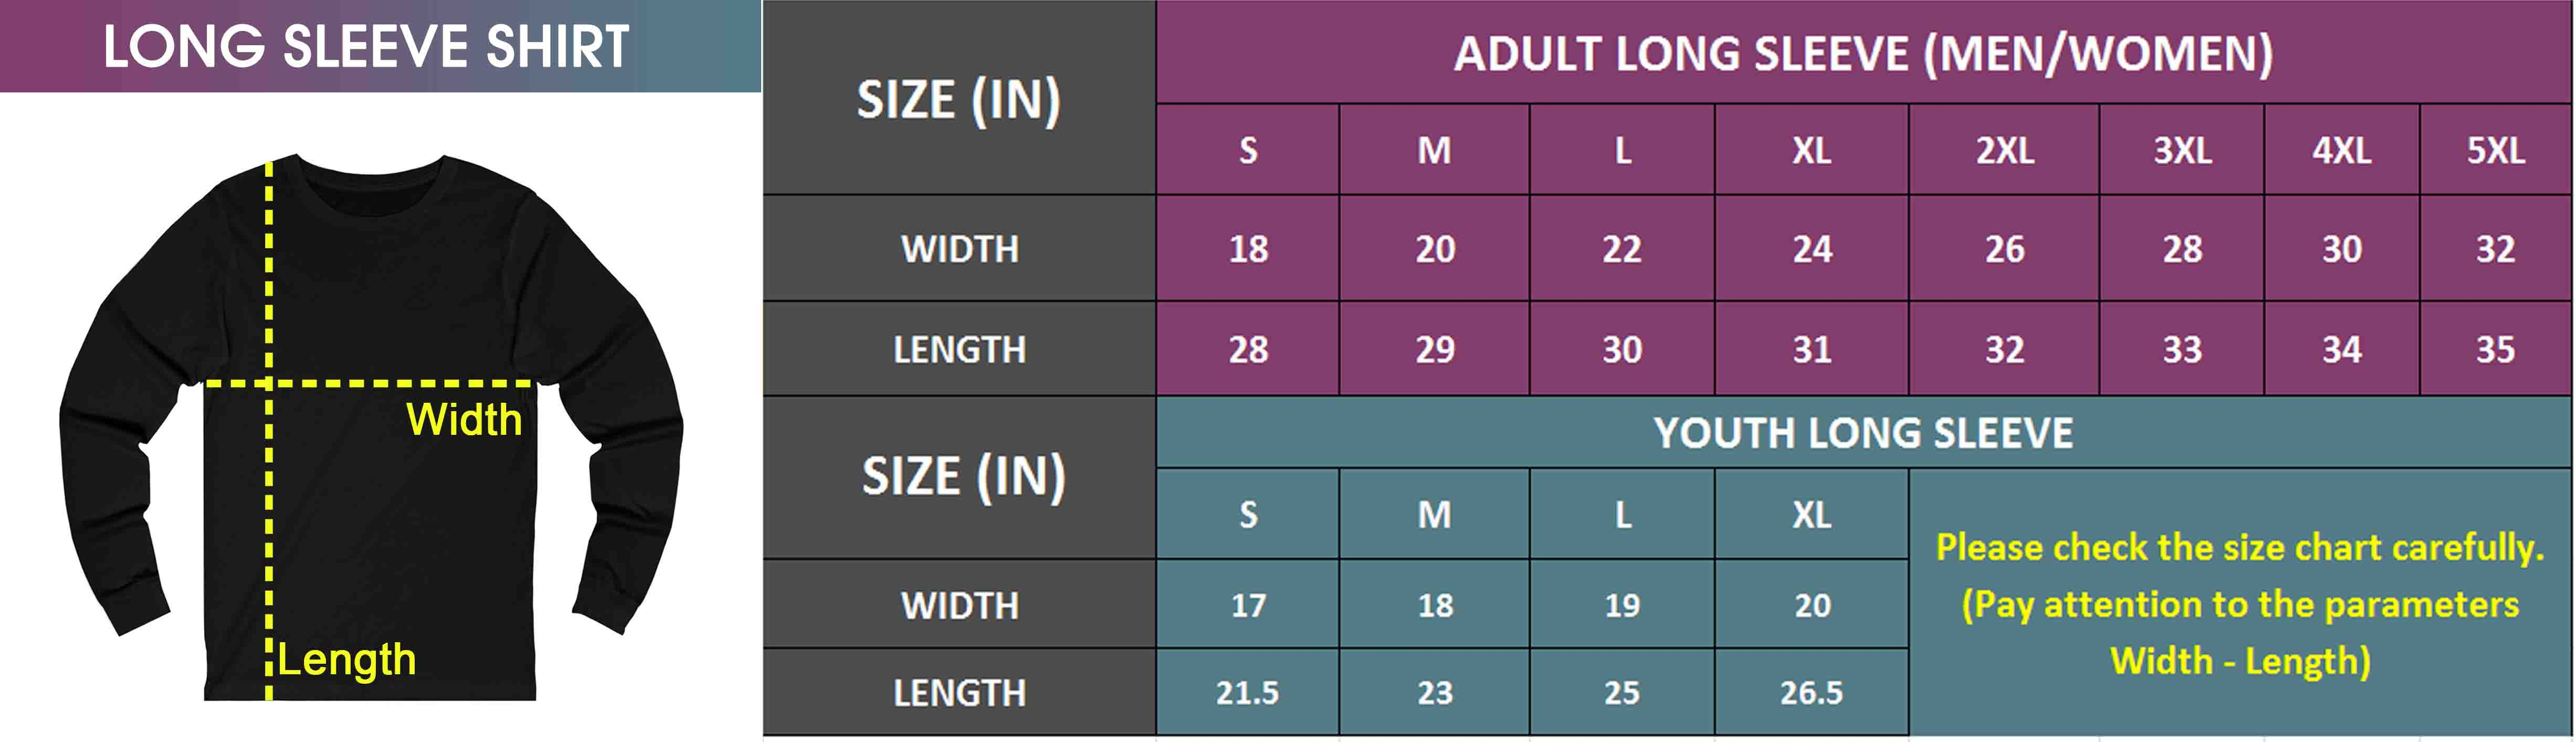 Adult & Youth Long Sleeve | Size Chart